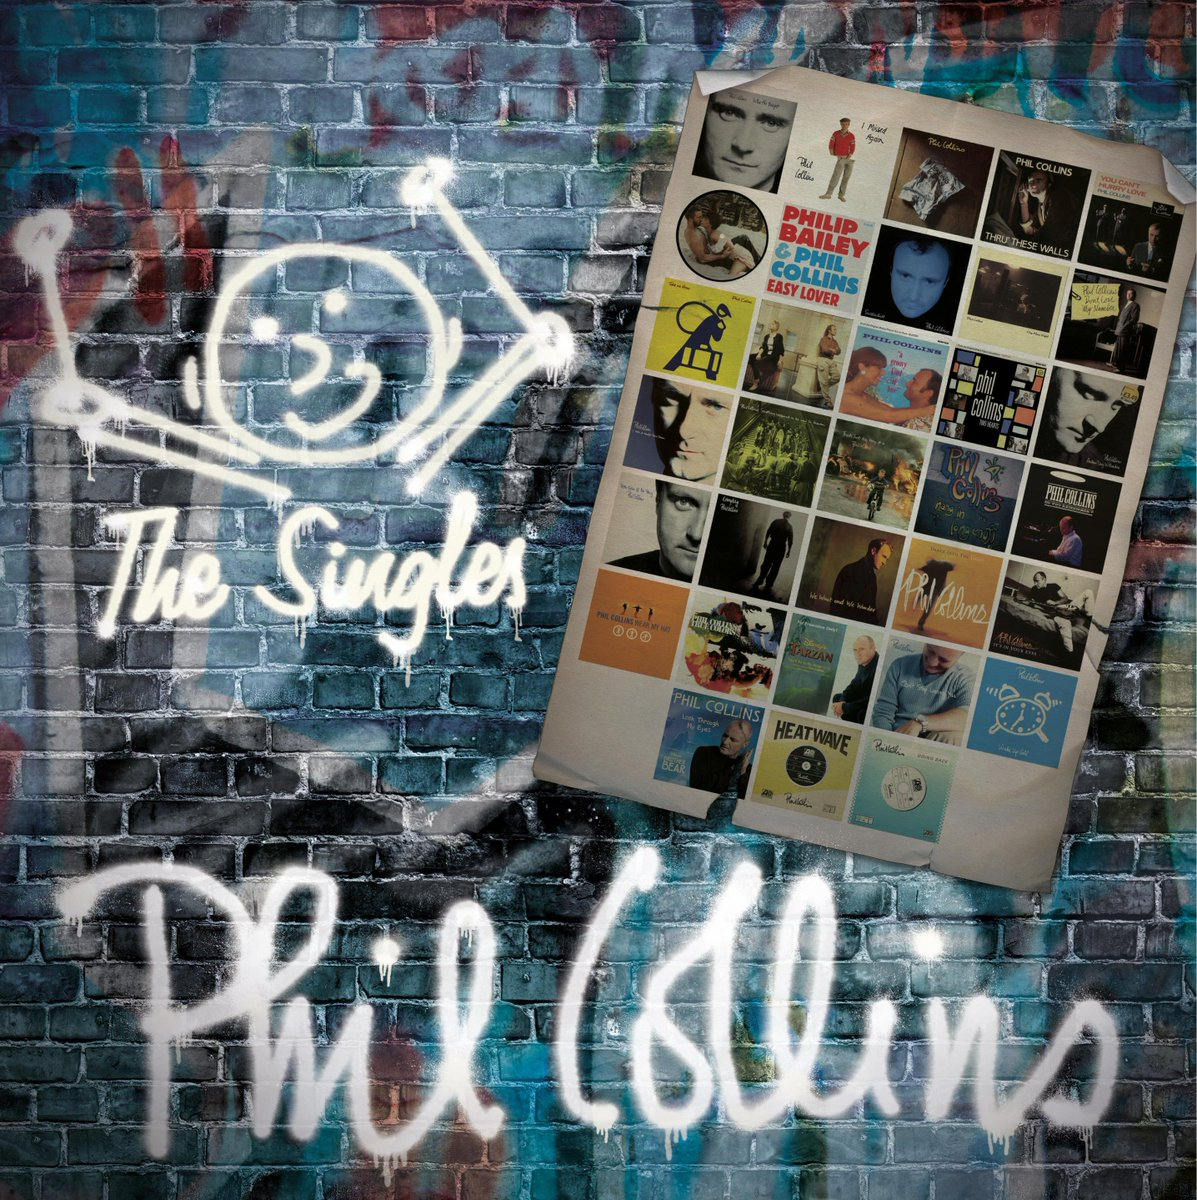 'The Singles': Coming this October 14, all of the highlights from Phil's career on 2CD, 3CD, 4LP + iTunes/Streaming! https://t.co/52WoKekWqL